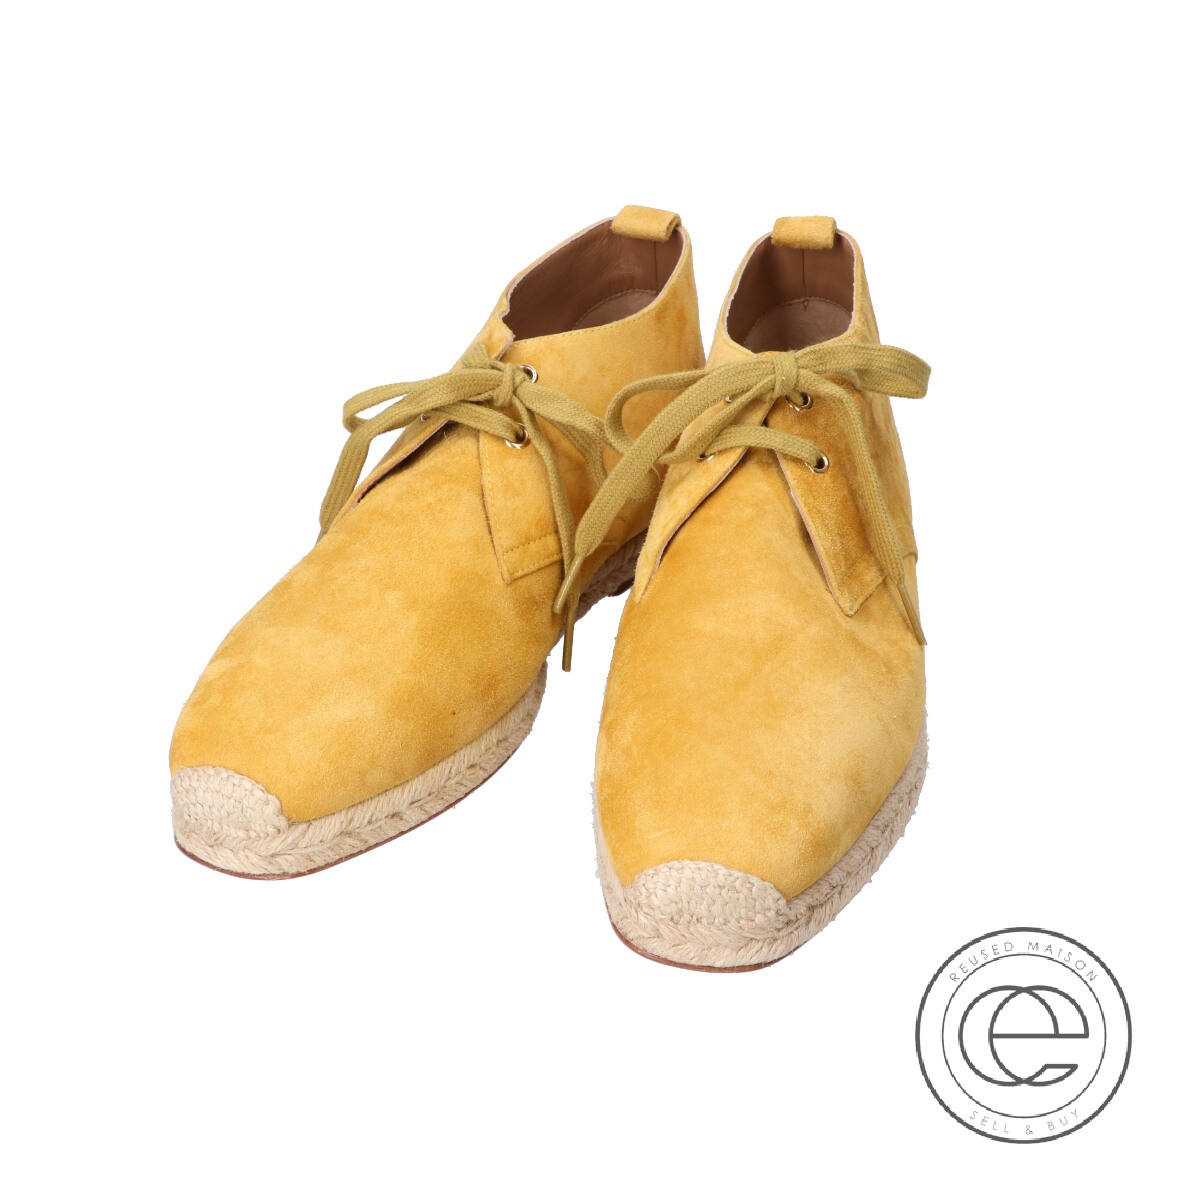 huge discount b2de9 83c72 Christian Louboutin クリスチャンルブタン Neocadaques lace-up suede espadrilles race  up espadrille desert boots / shoes 41 mustard yellow men